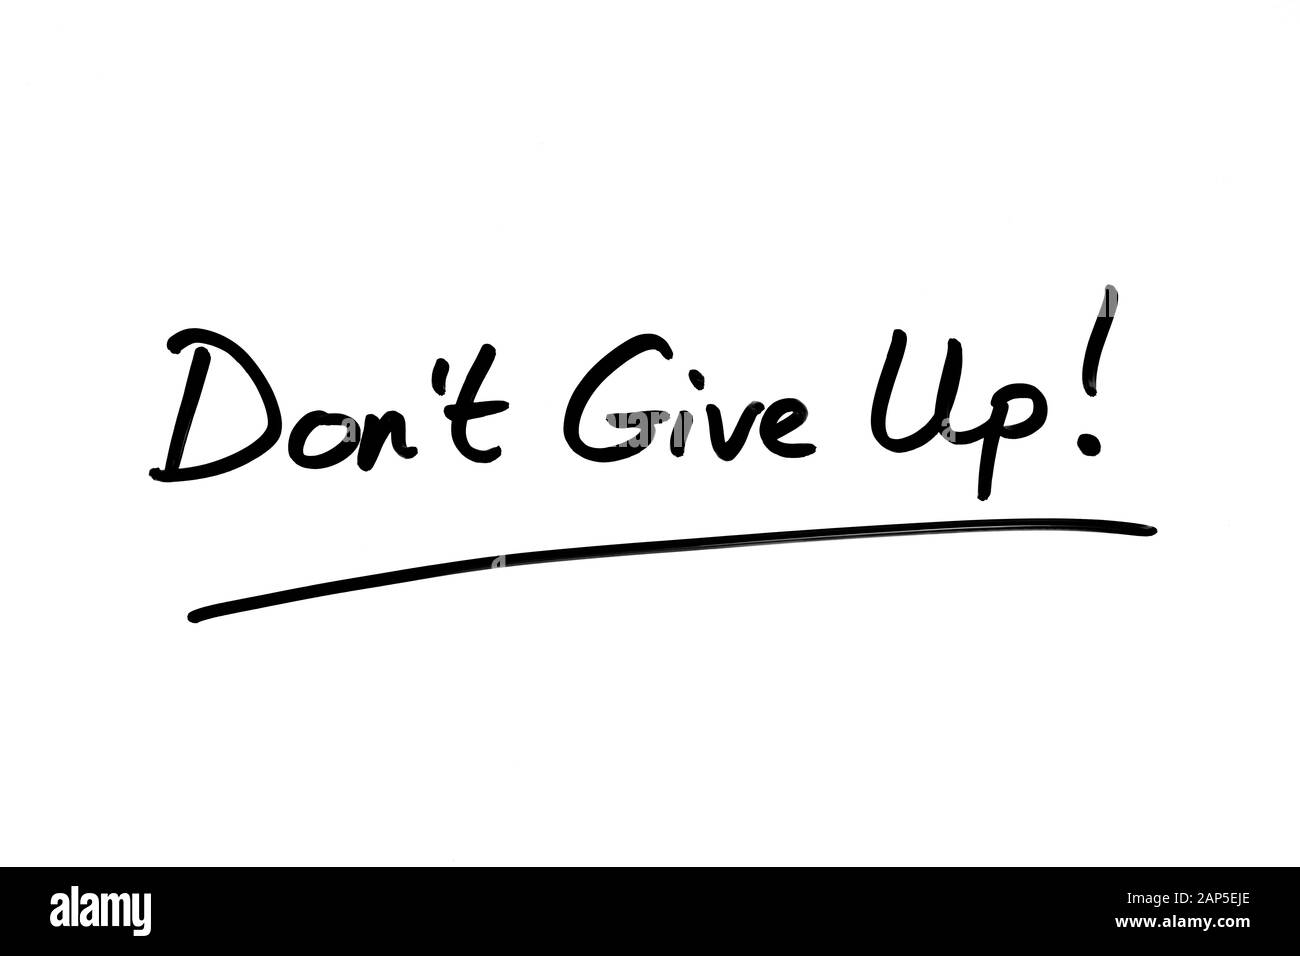 Don't Give Up! handwritten on a white background. Stock Photo